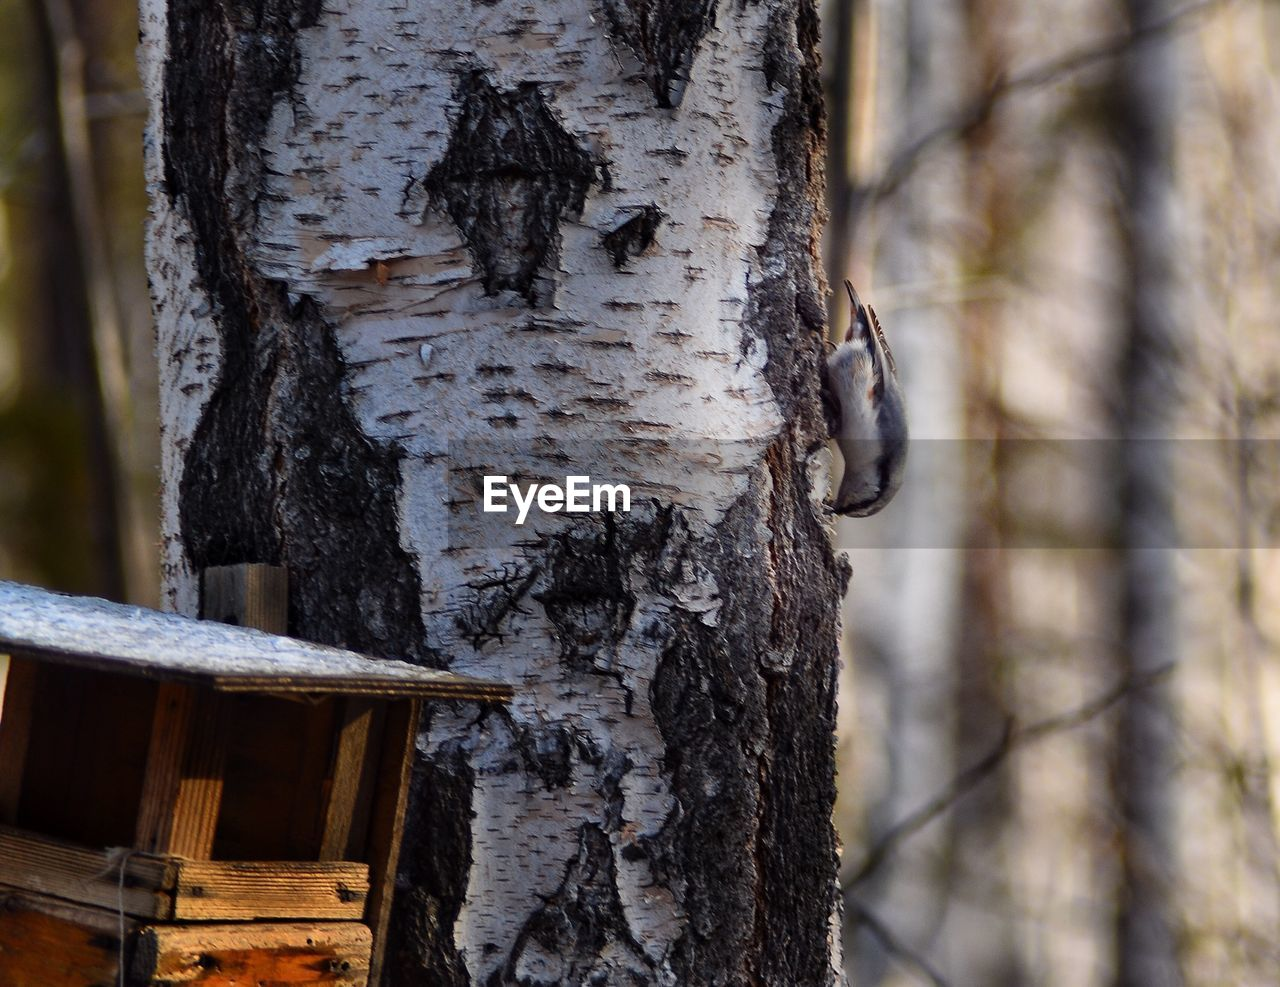 tree trunk, tree, trunk, focus on foreground, plant, wood - material, textured, nature, day, forest, close-up, outdoors, no people, land, growth, plant bark, bark, pattern, birch tree, rough